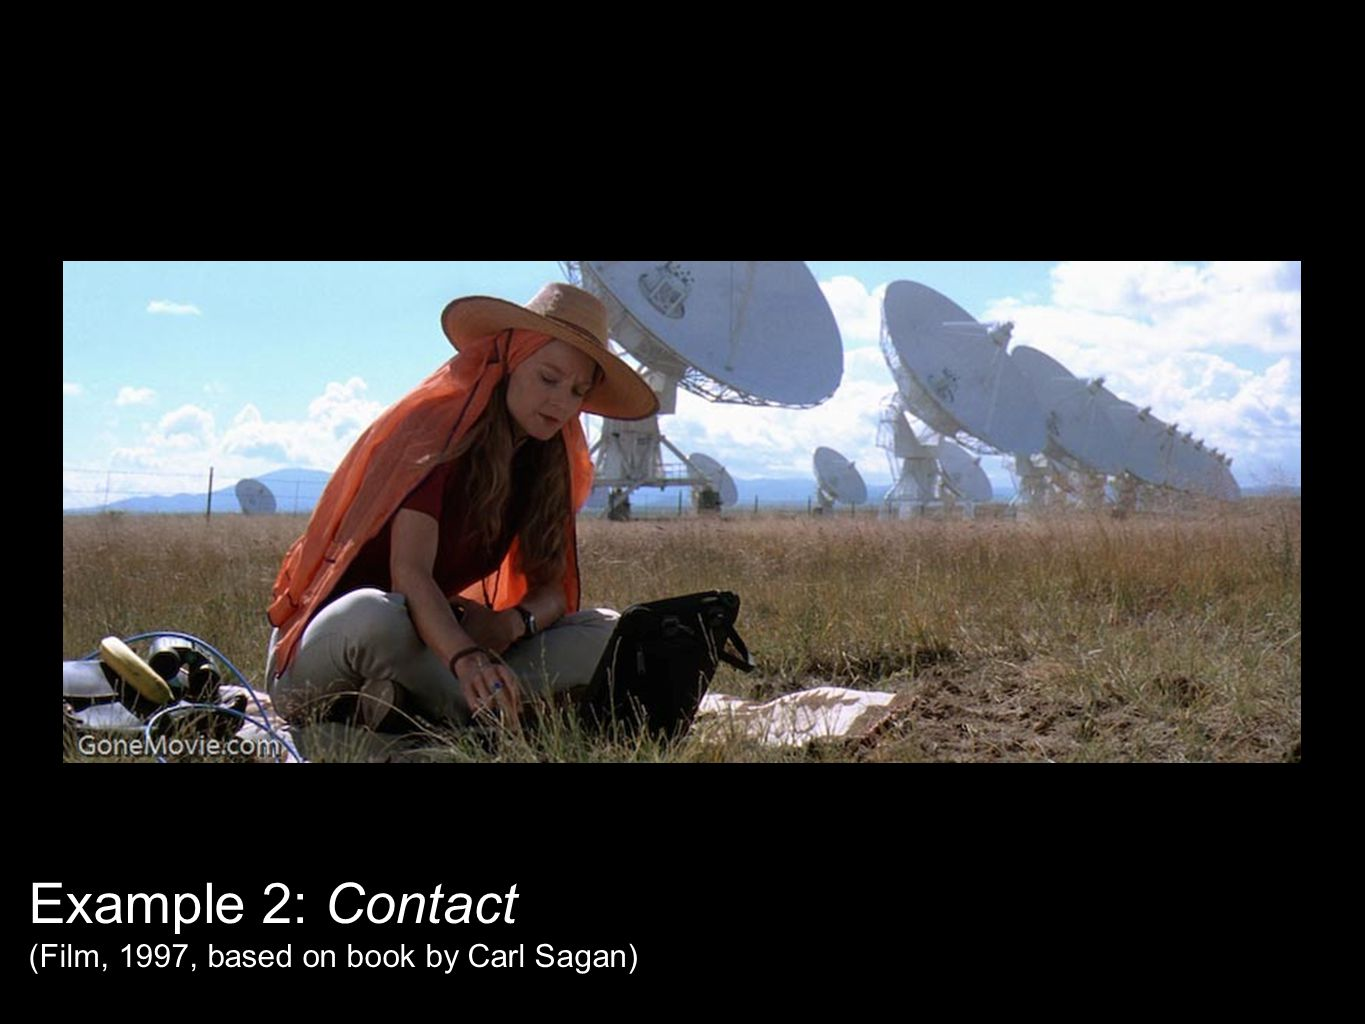 Example 2: Contact (Film, 1997, based on book by Carl Sagan)